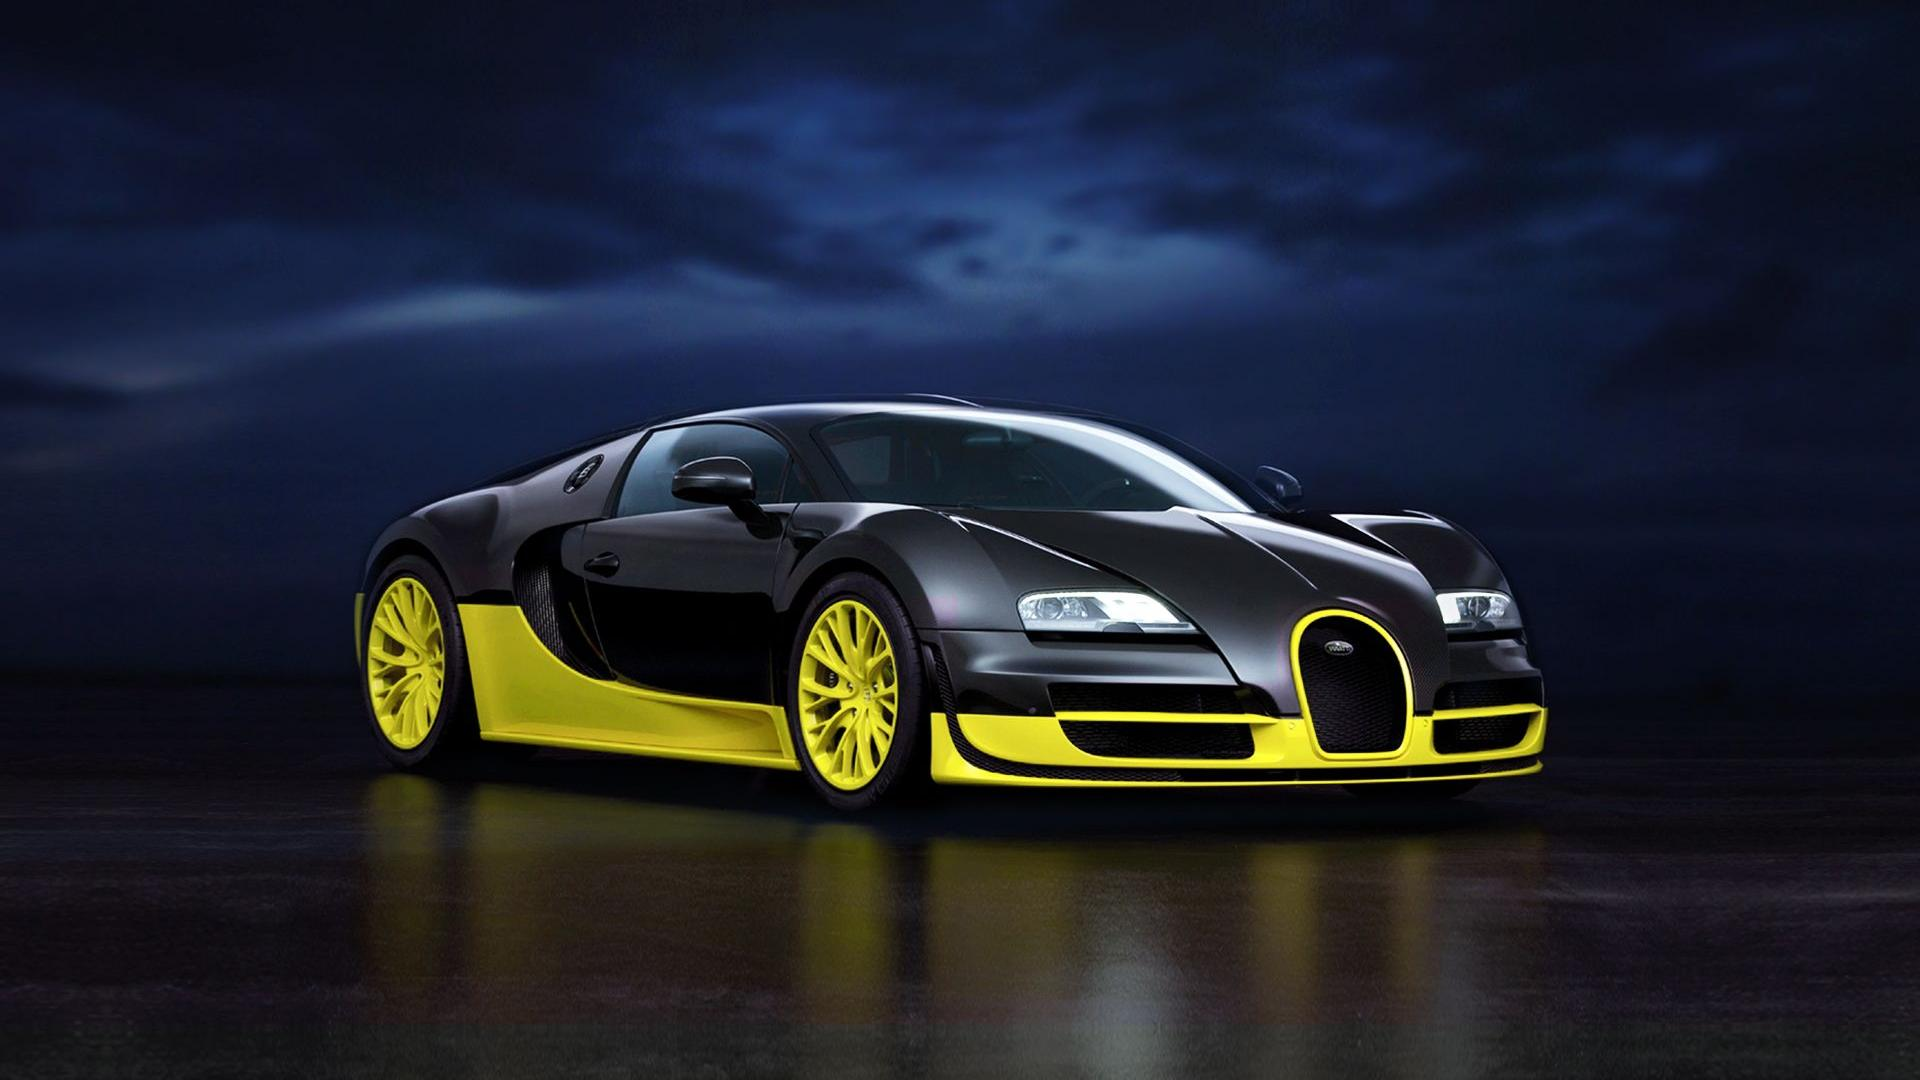 bugatti-superveyron-wallpapers-64833-2691392.jpg